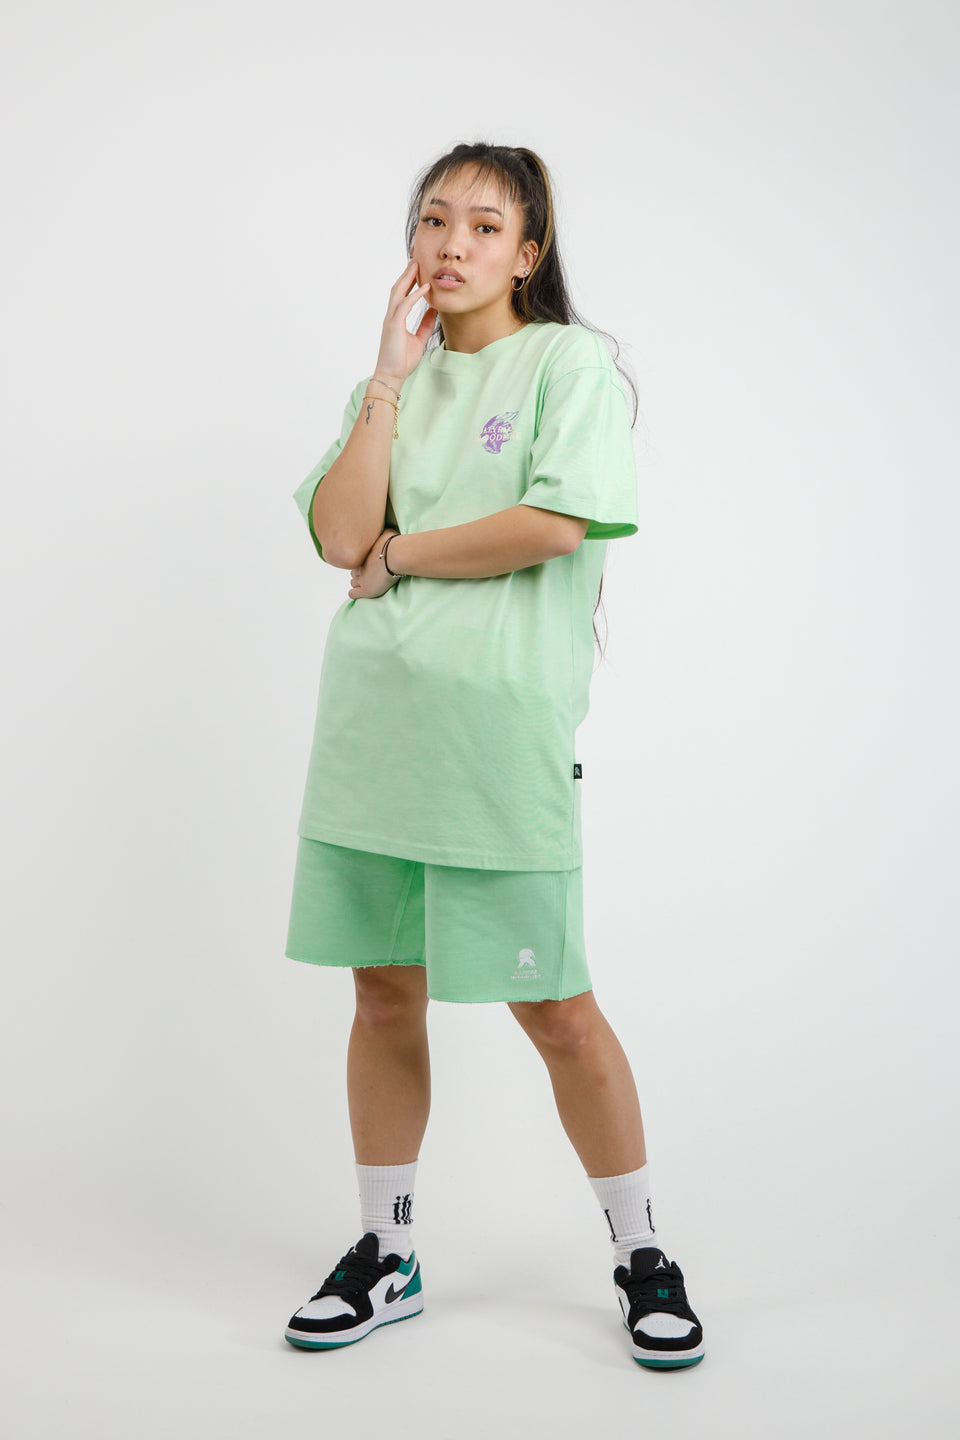 Gent T-shirt - Pastel Green